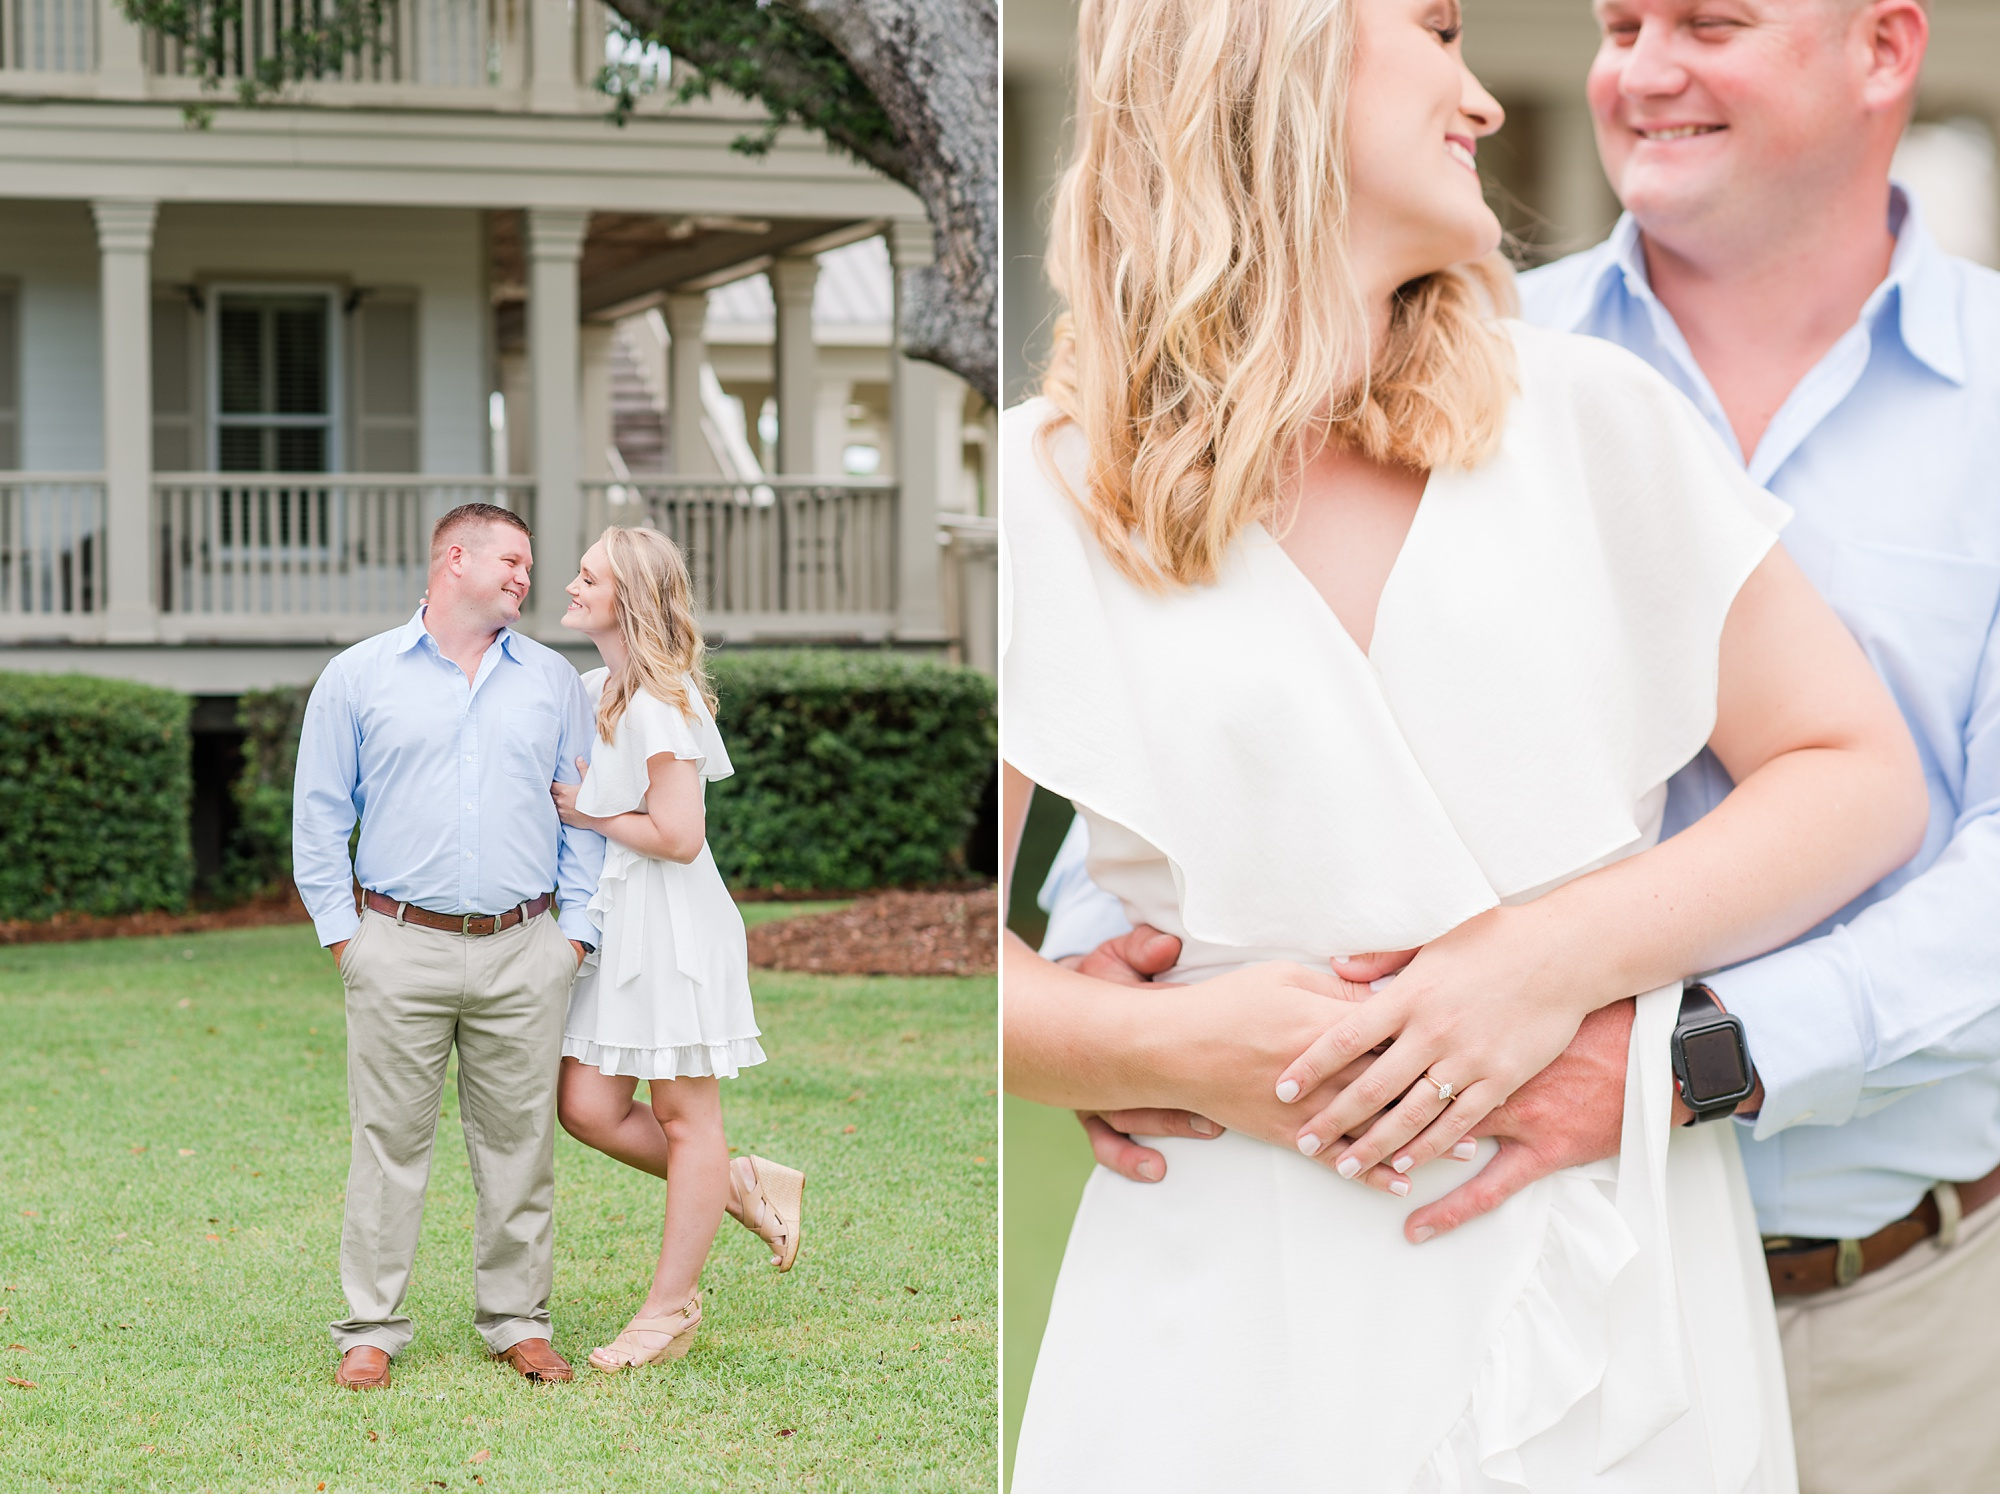 Alabama engagement session with bride in white dress